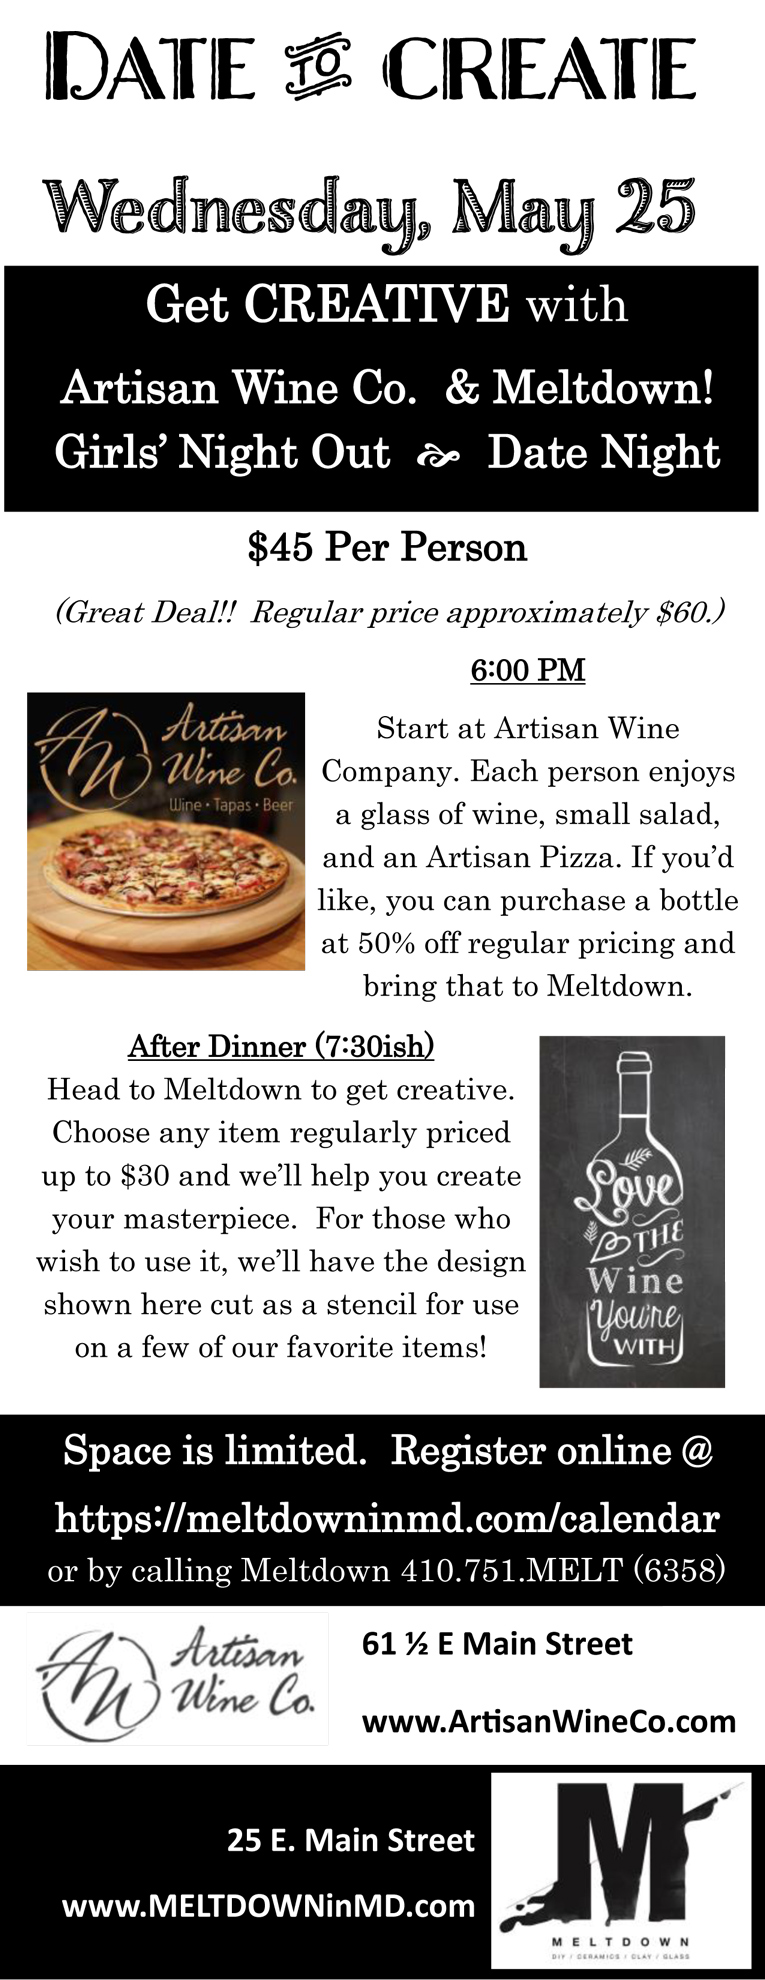 Date To Create Night Wed, May 25th